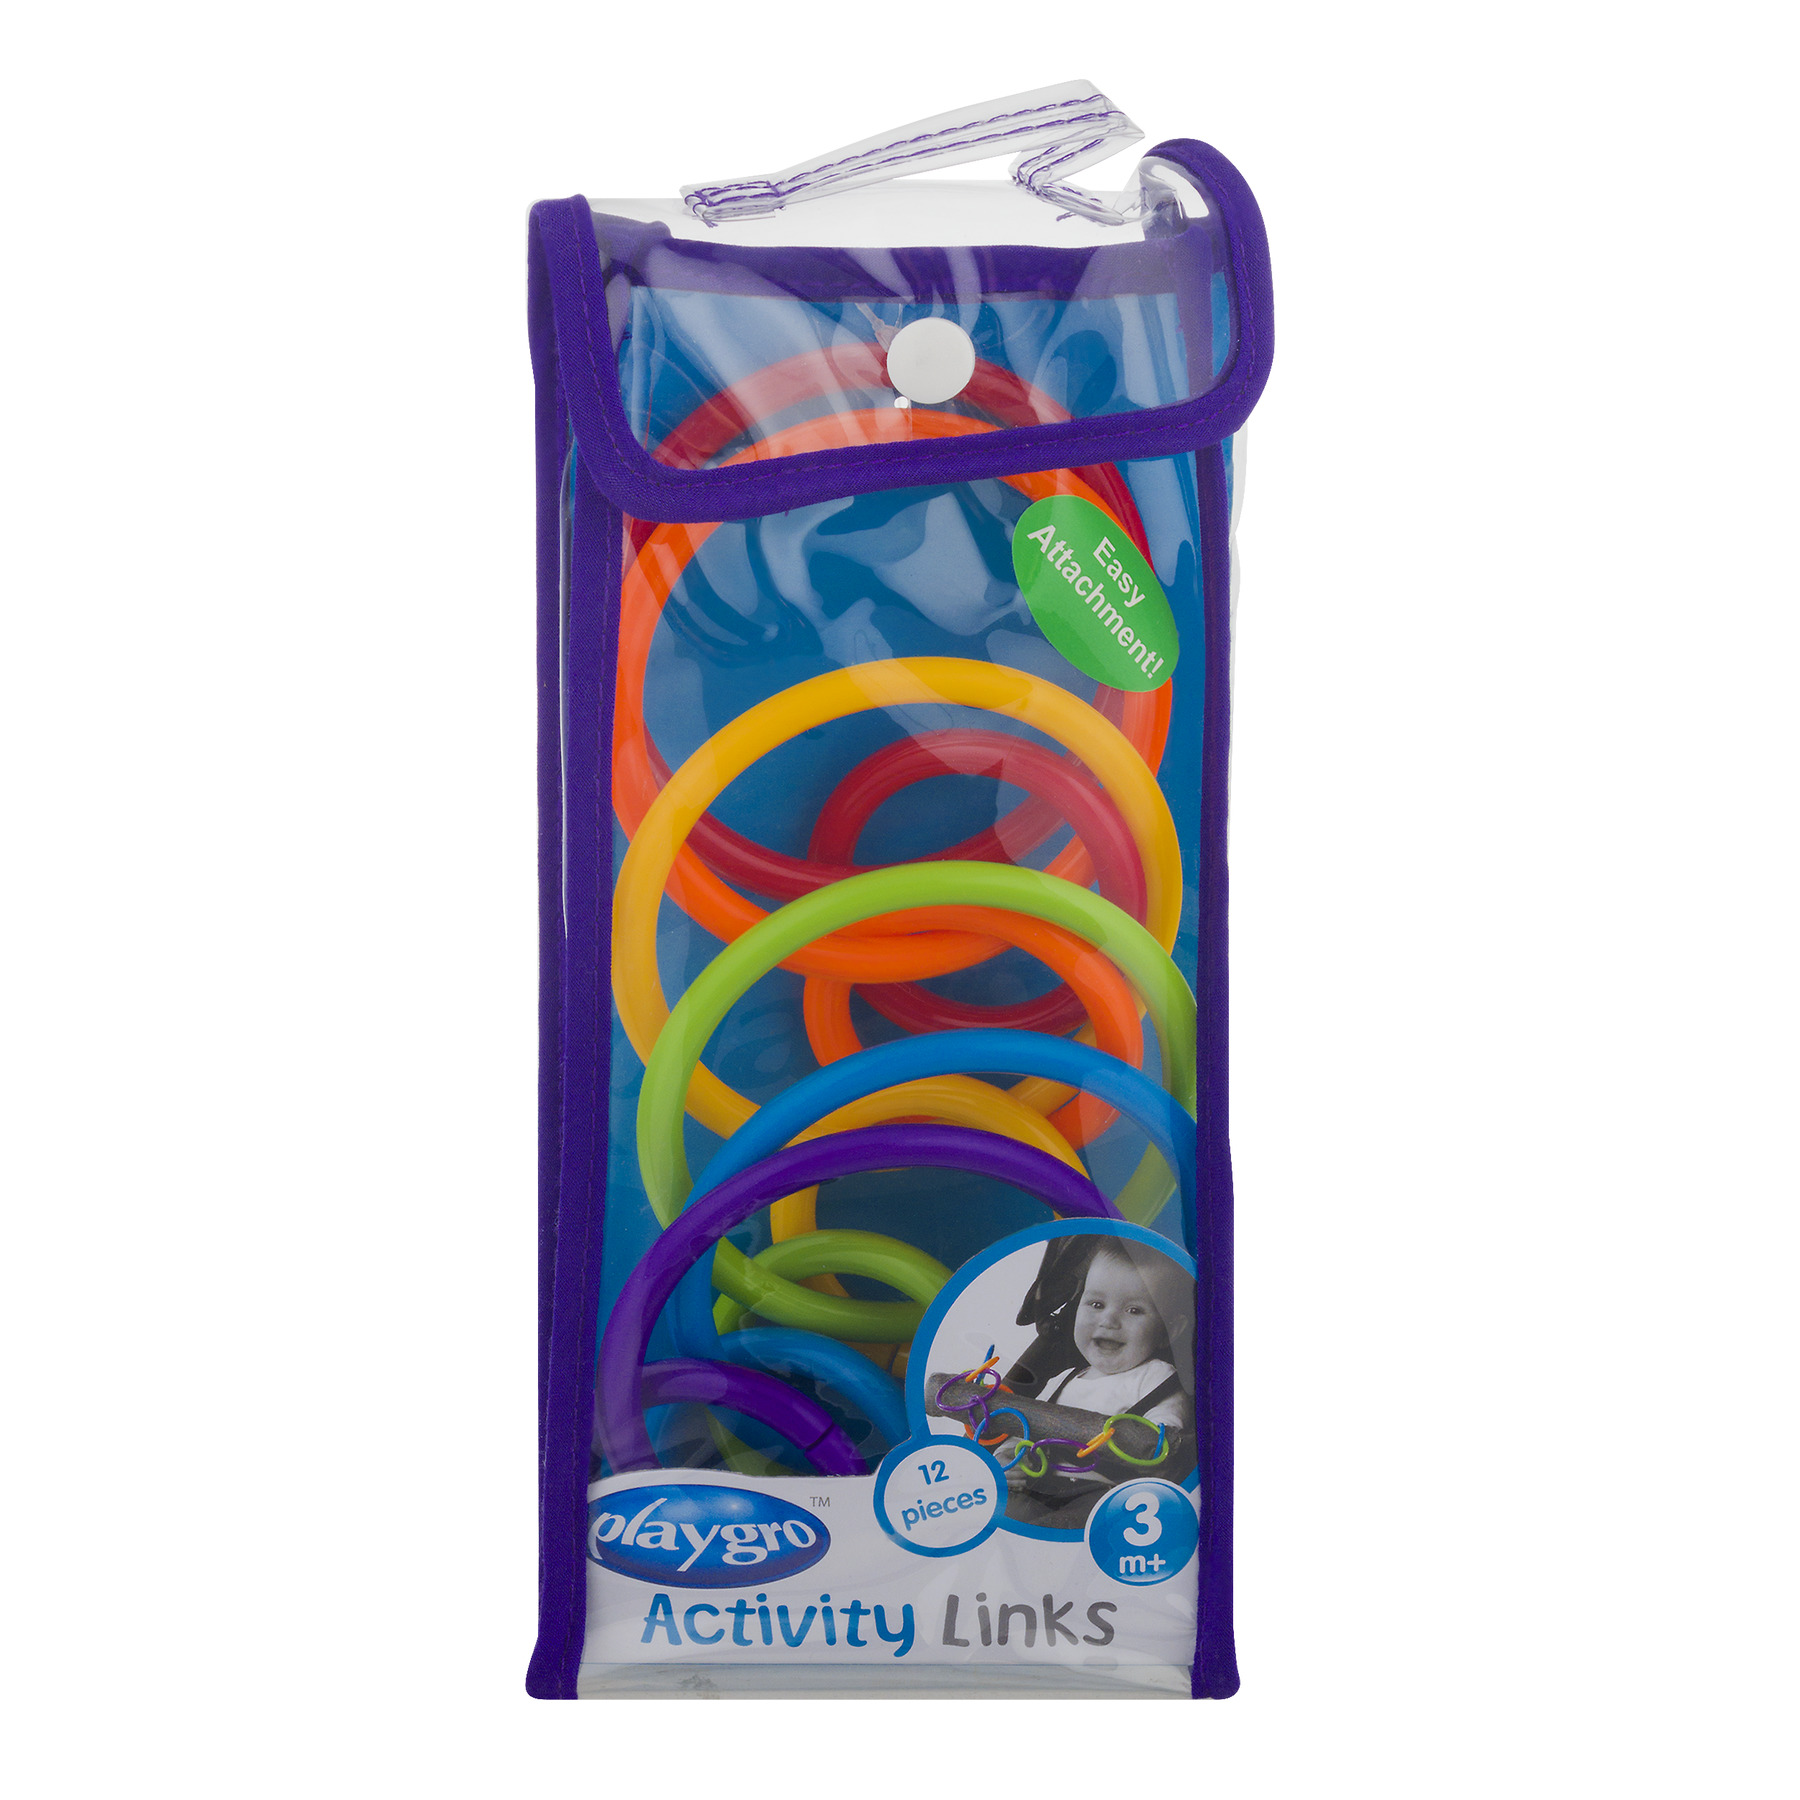 Playgro Activity Links 3m+ - 12 PC, 12.0 PIECE(S)